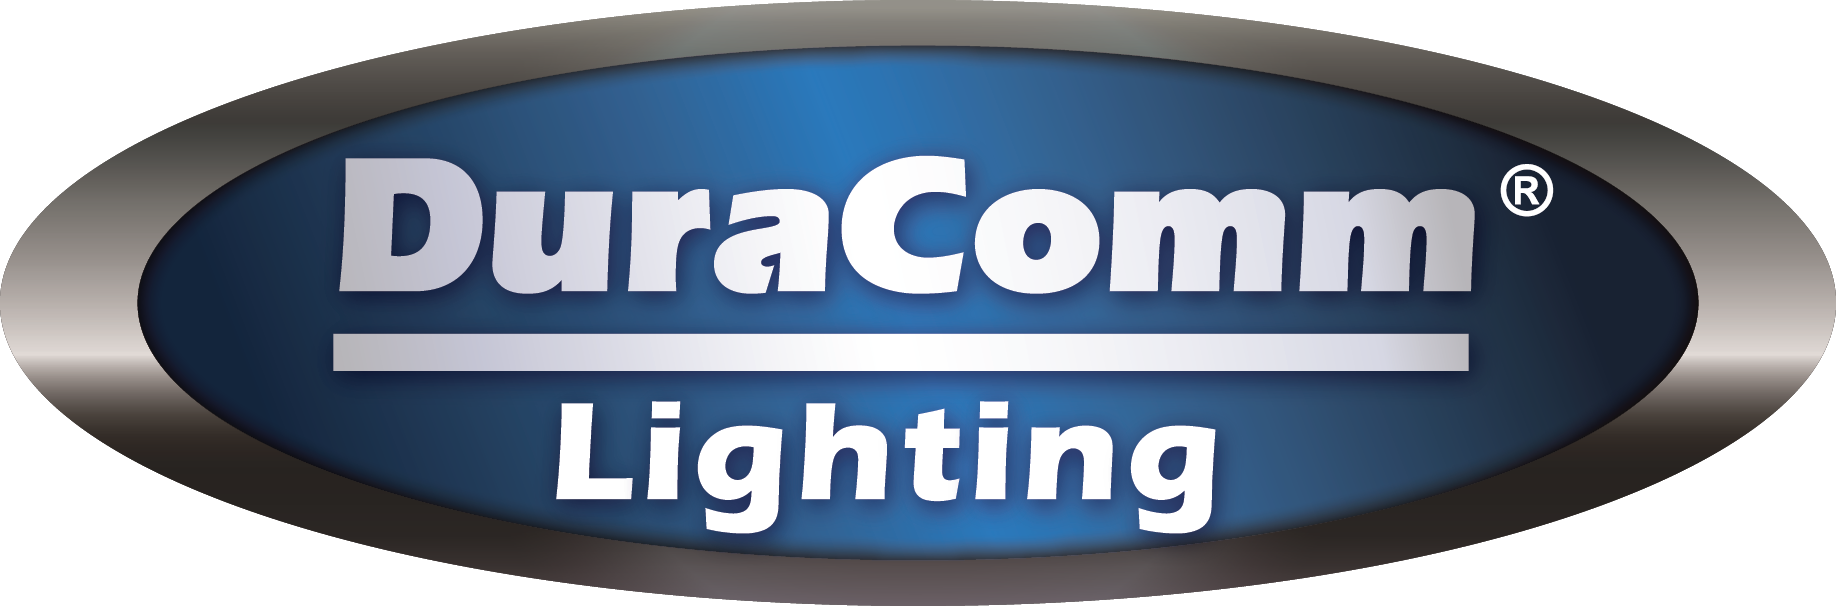 DuraComm Lighting